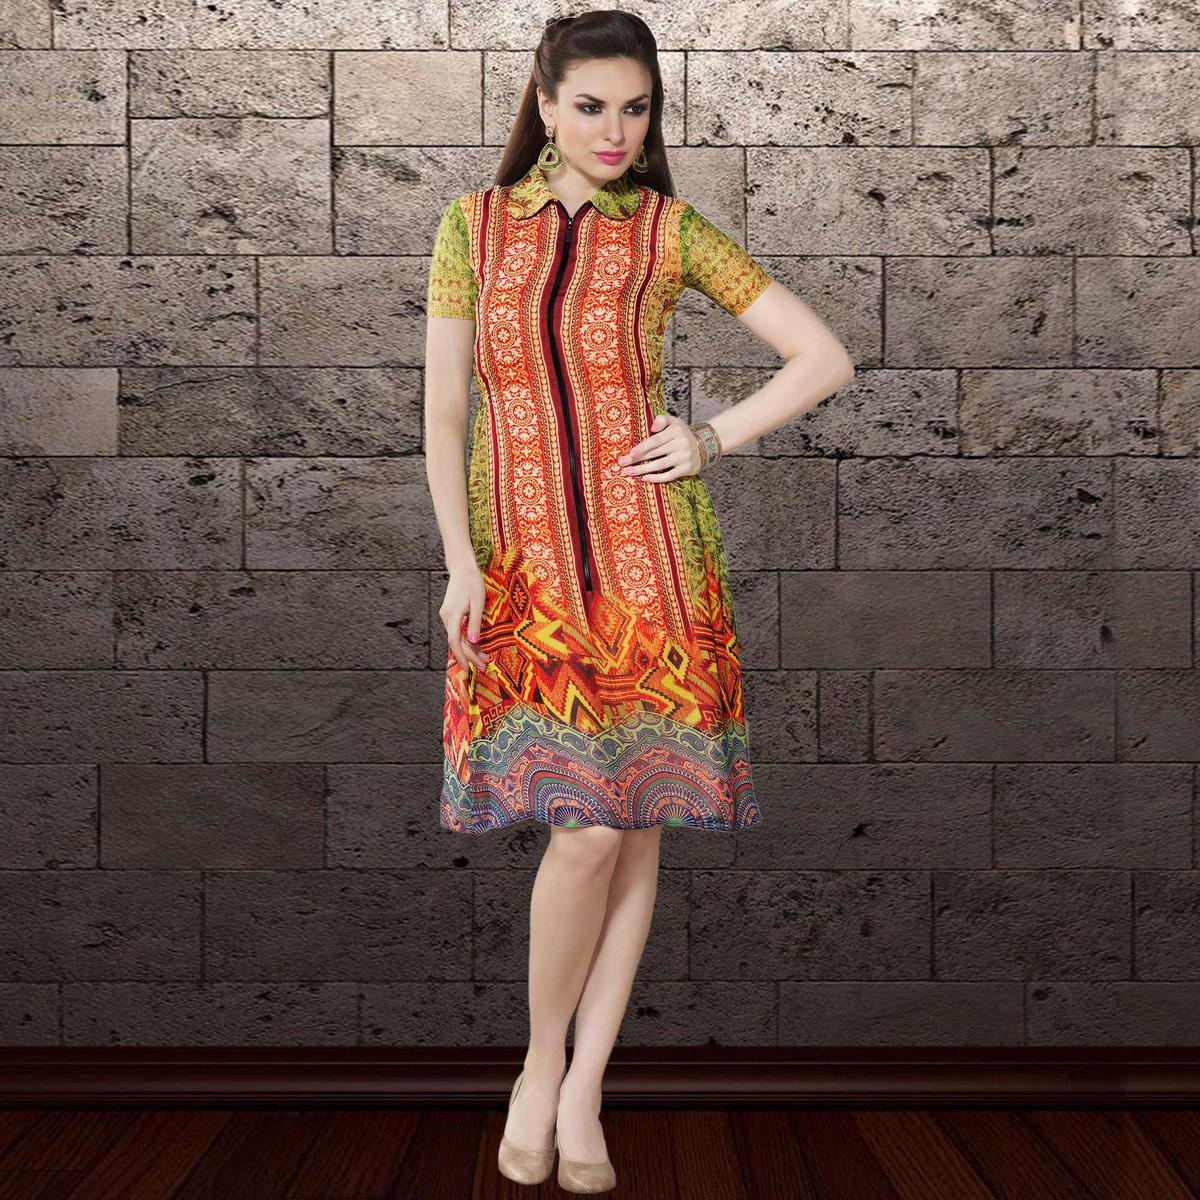 Classy Orange & Green Colored Party Wear Printed Georgette Kurti